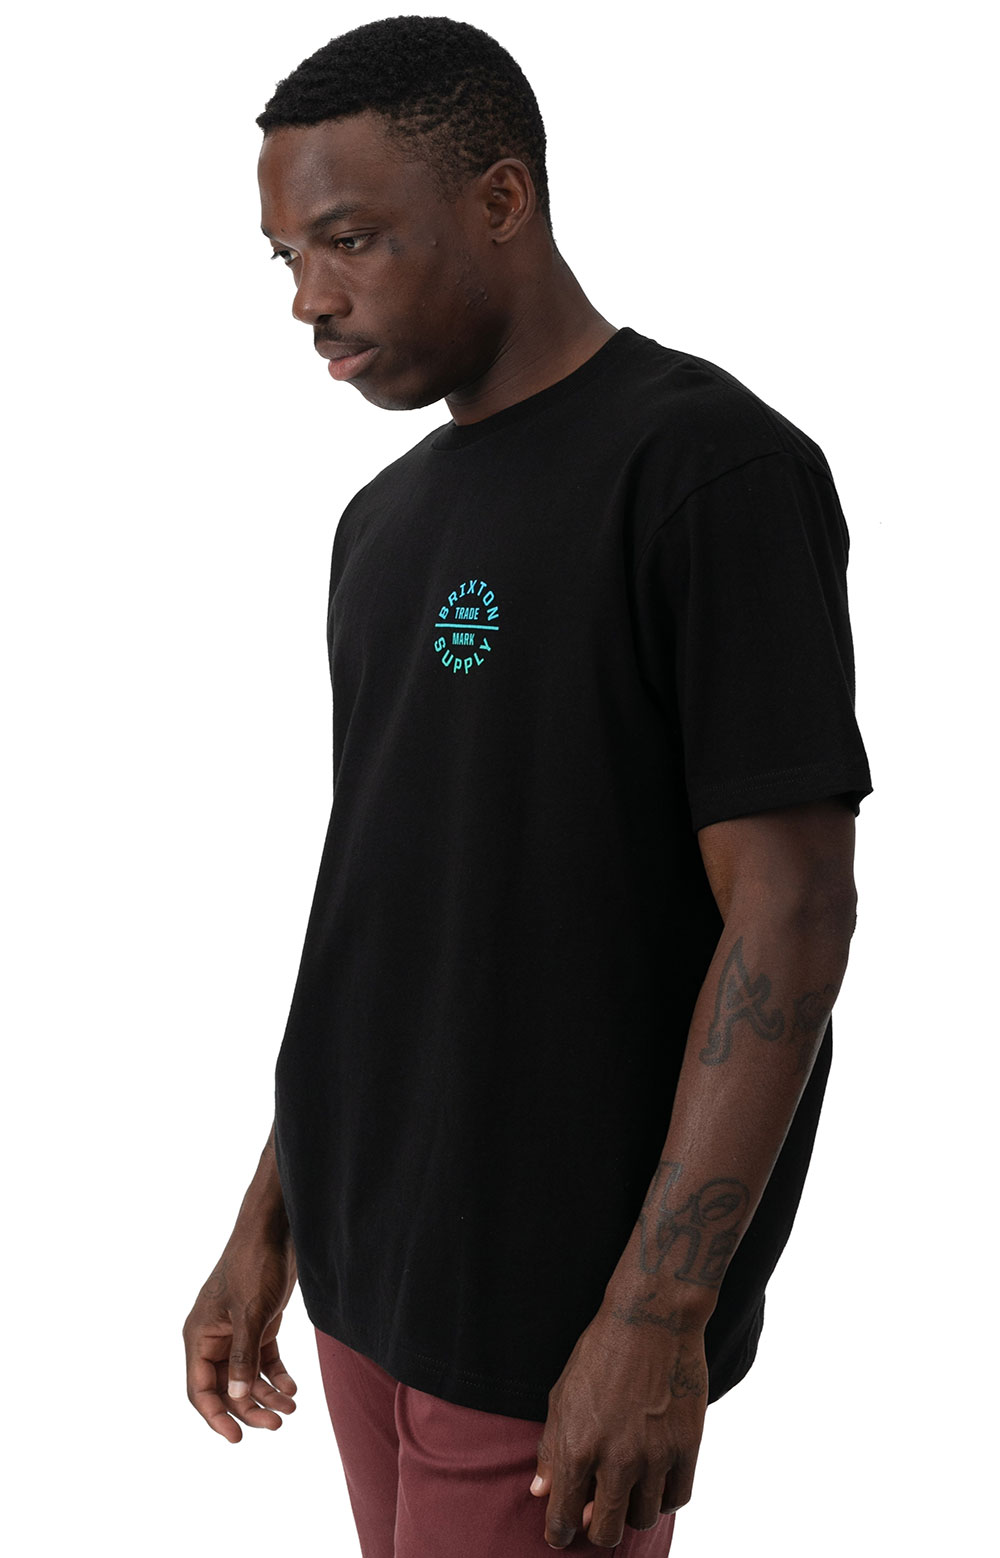 Oath V T-Shirt - Black/Gradient 2